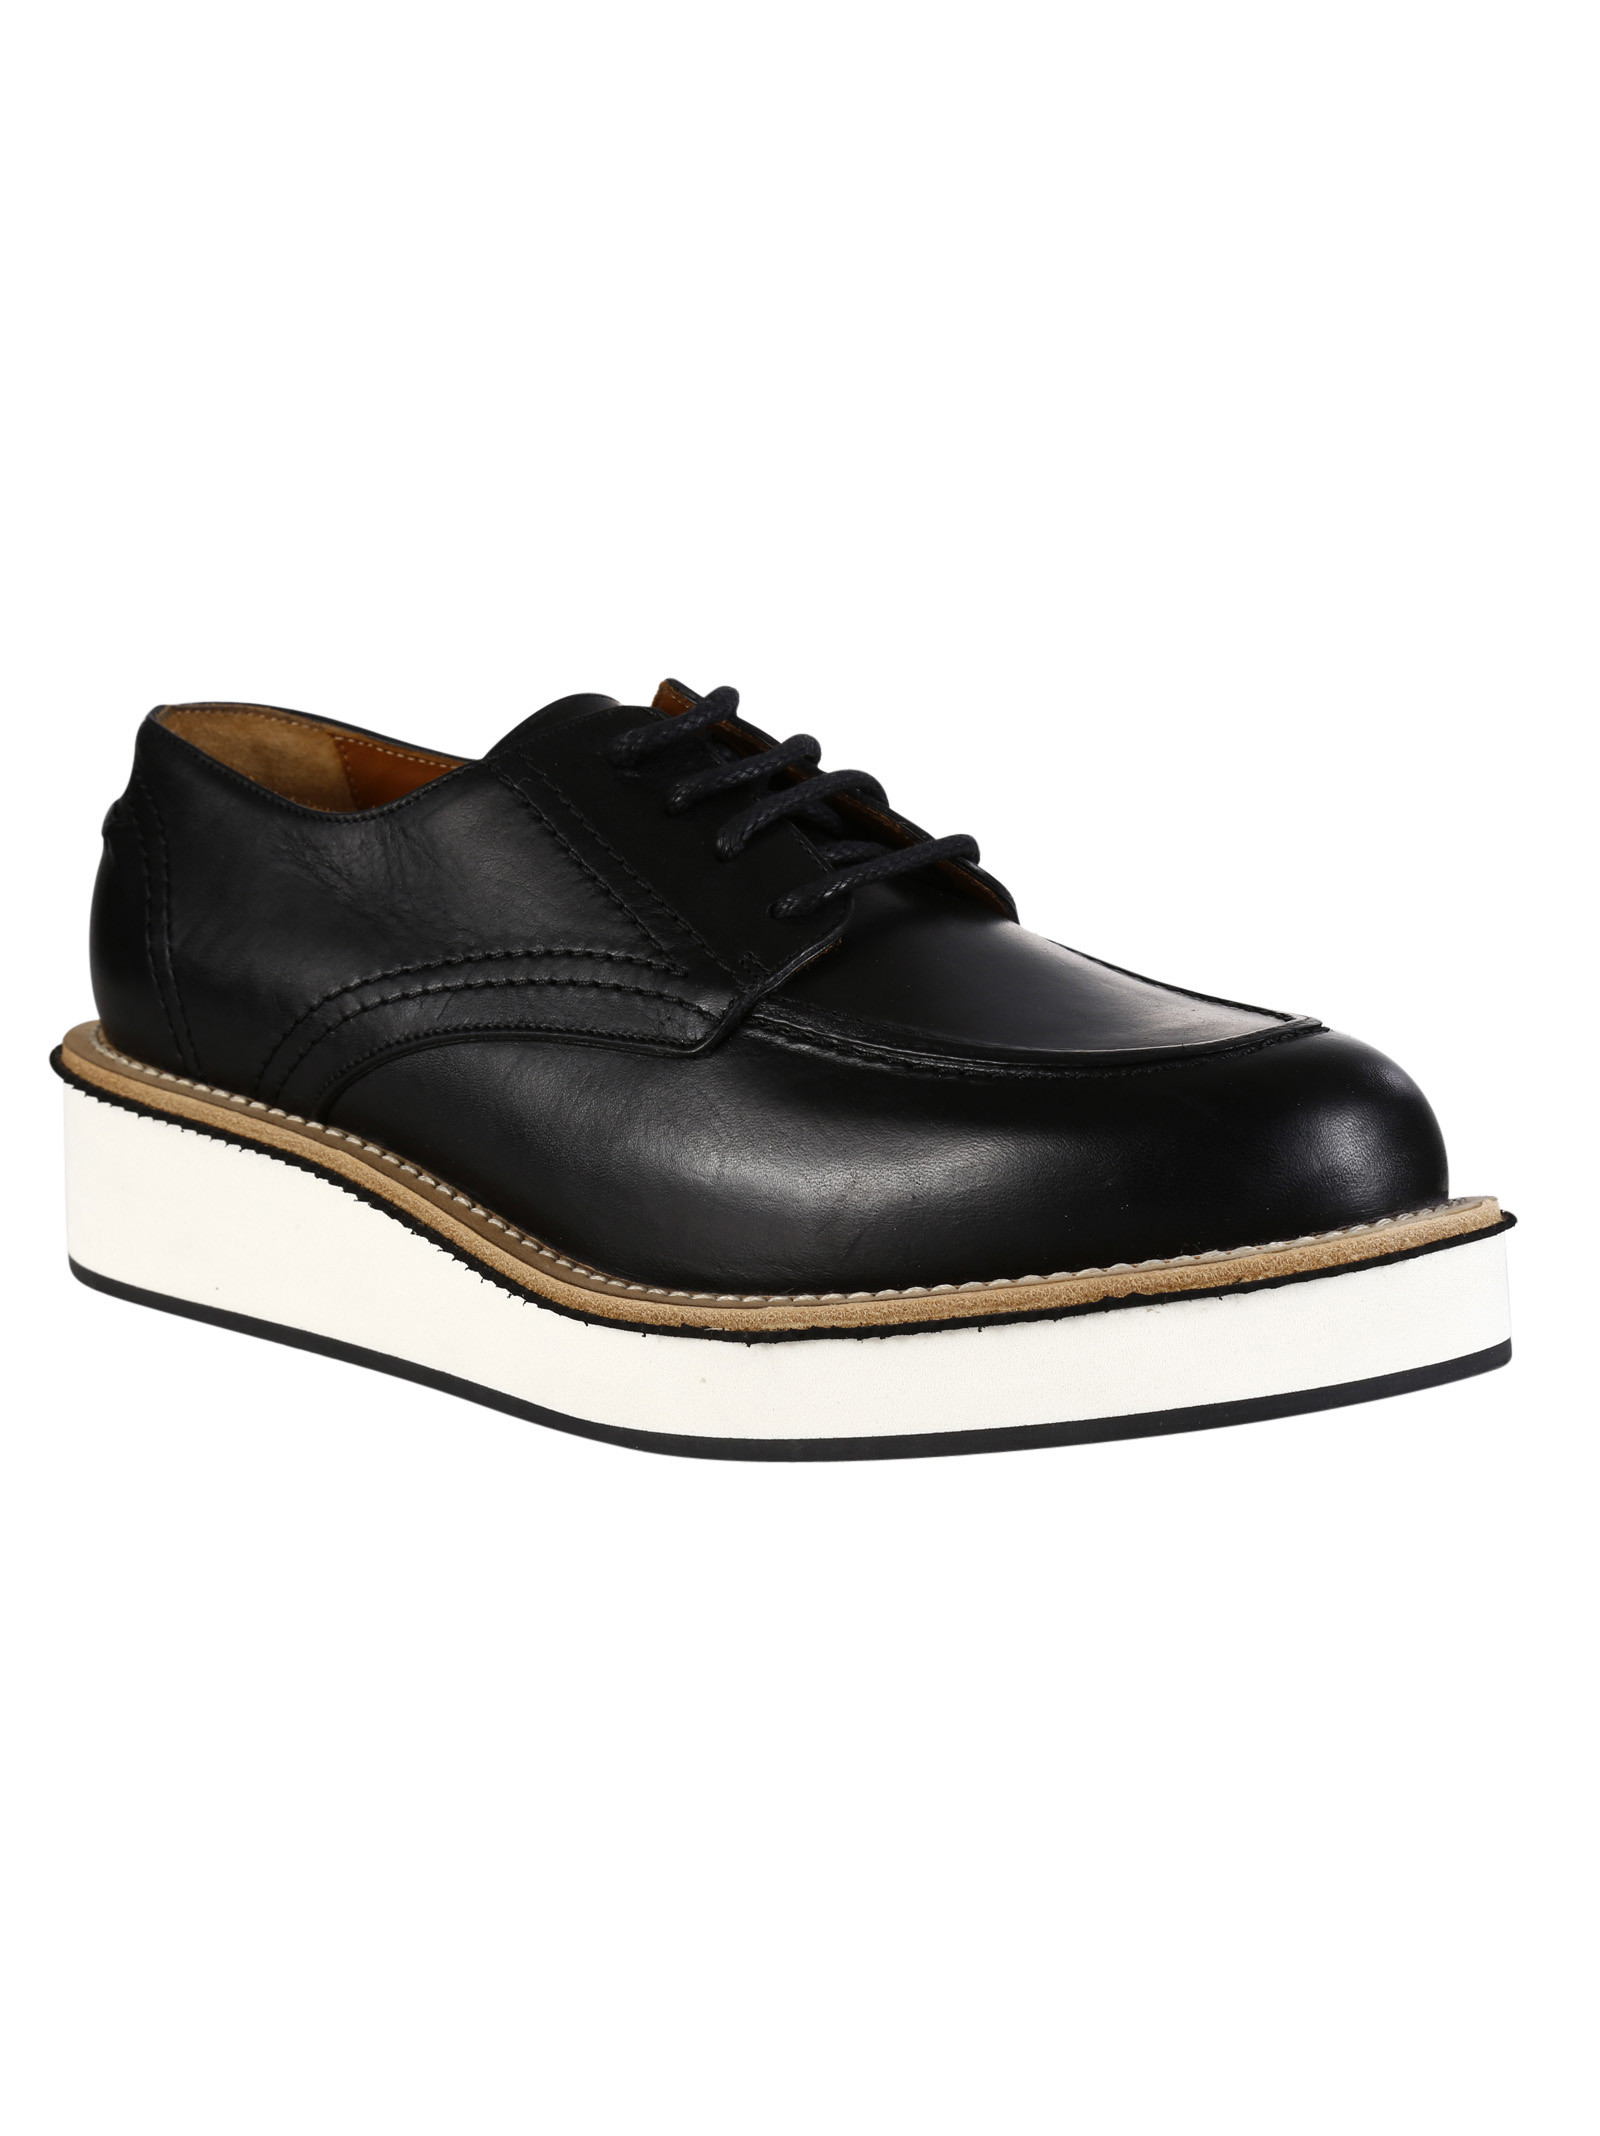 givenchy high platform lace up shoes black leather in